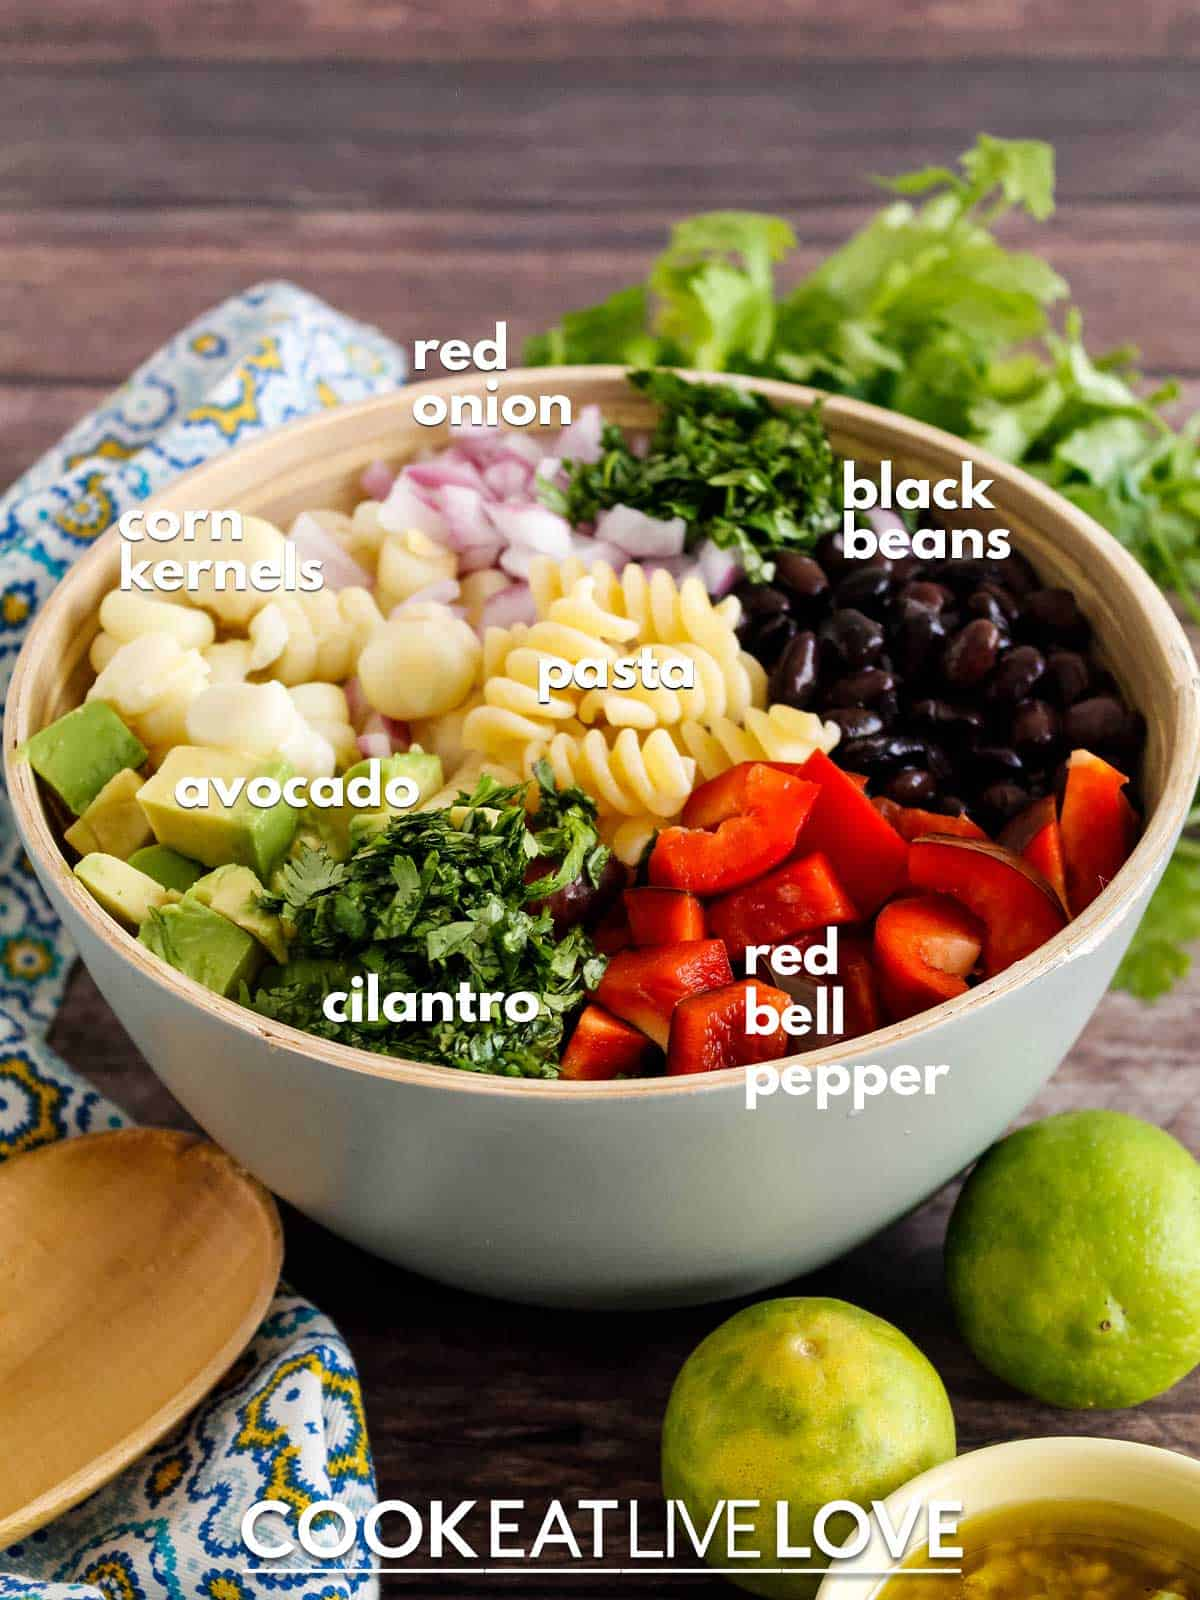 Bowl if ingredients to make southwestern pasta salad with text labels